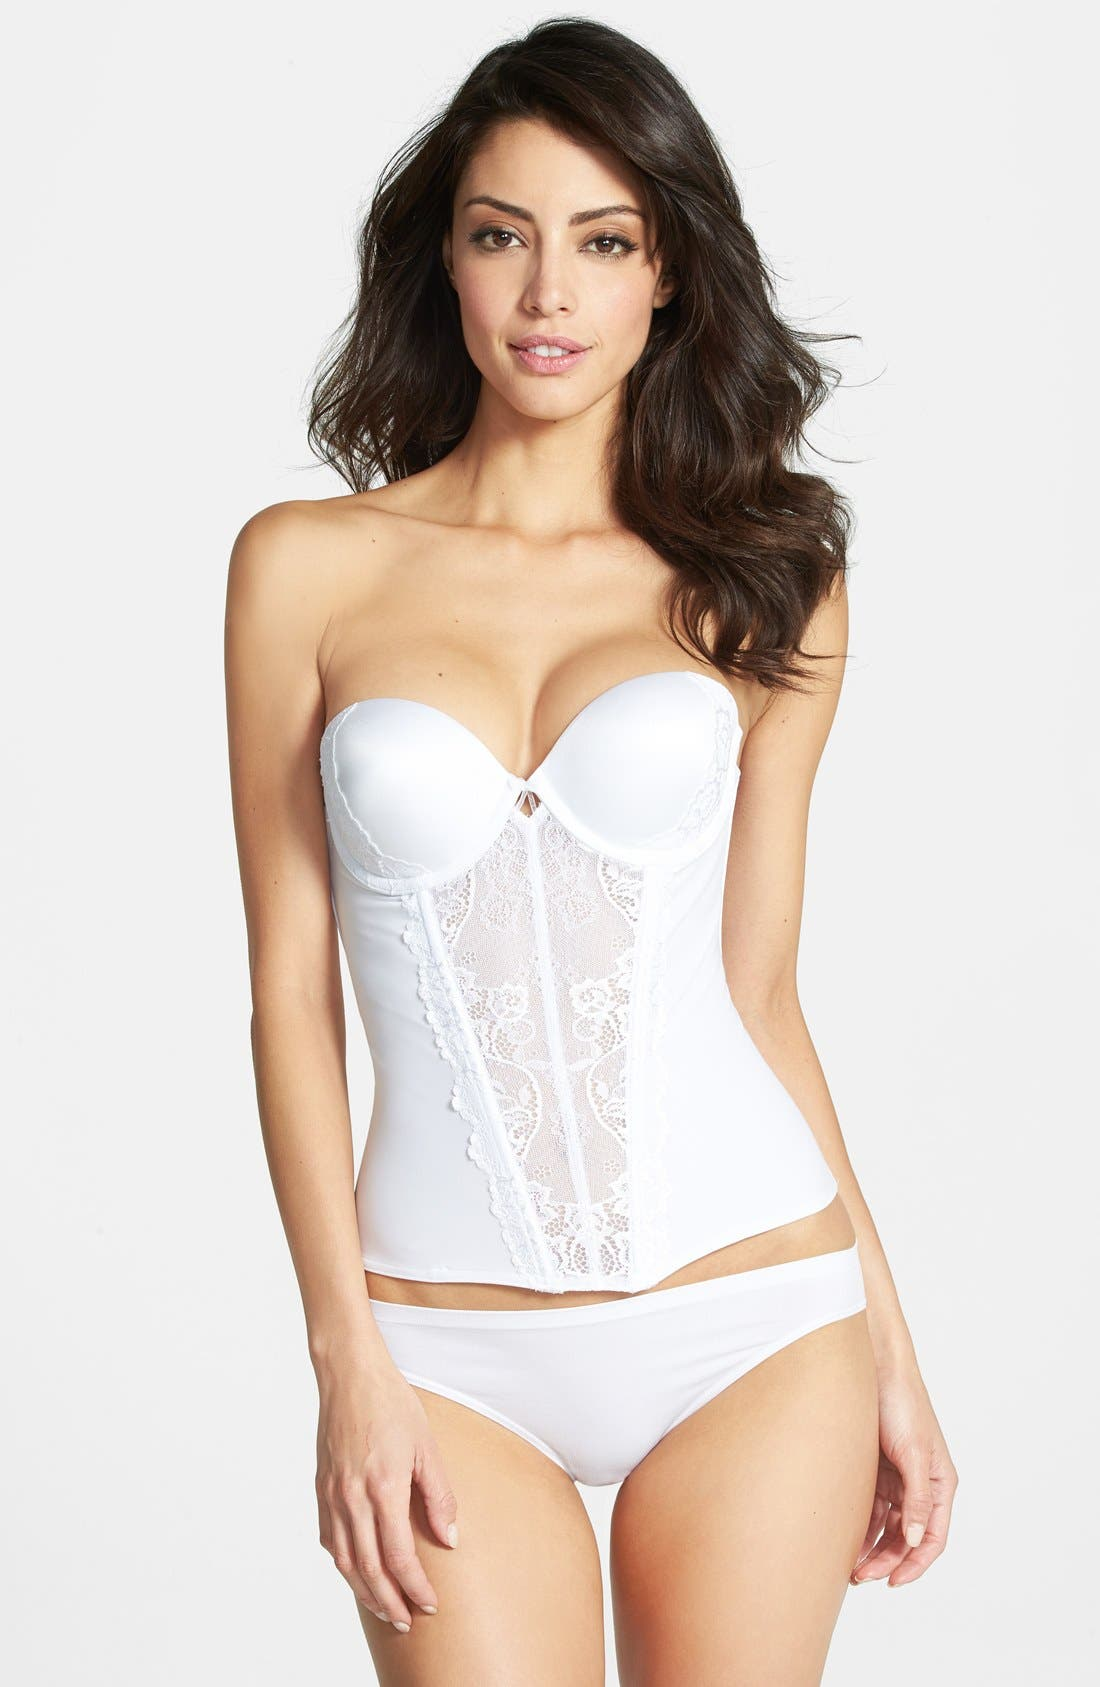 FELINA 'Caress Too' Lace Underwire Bustier